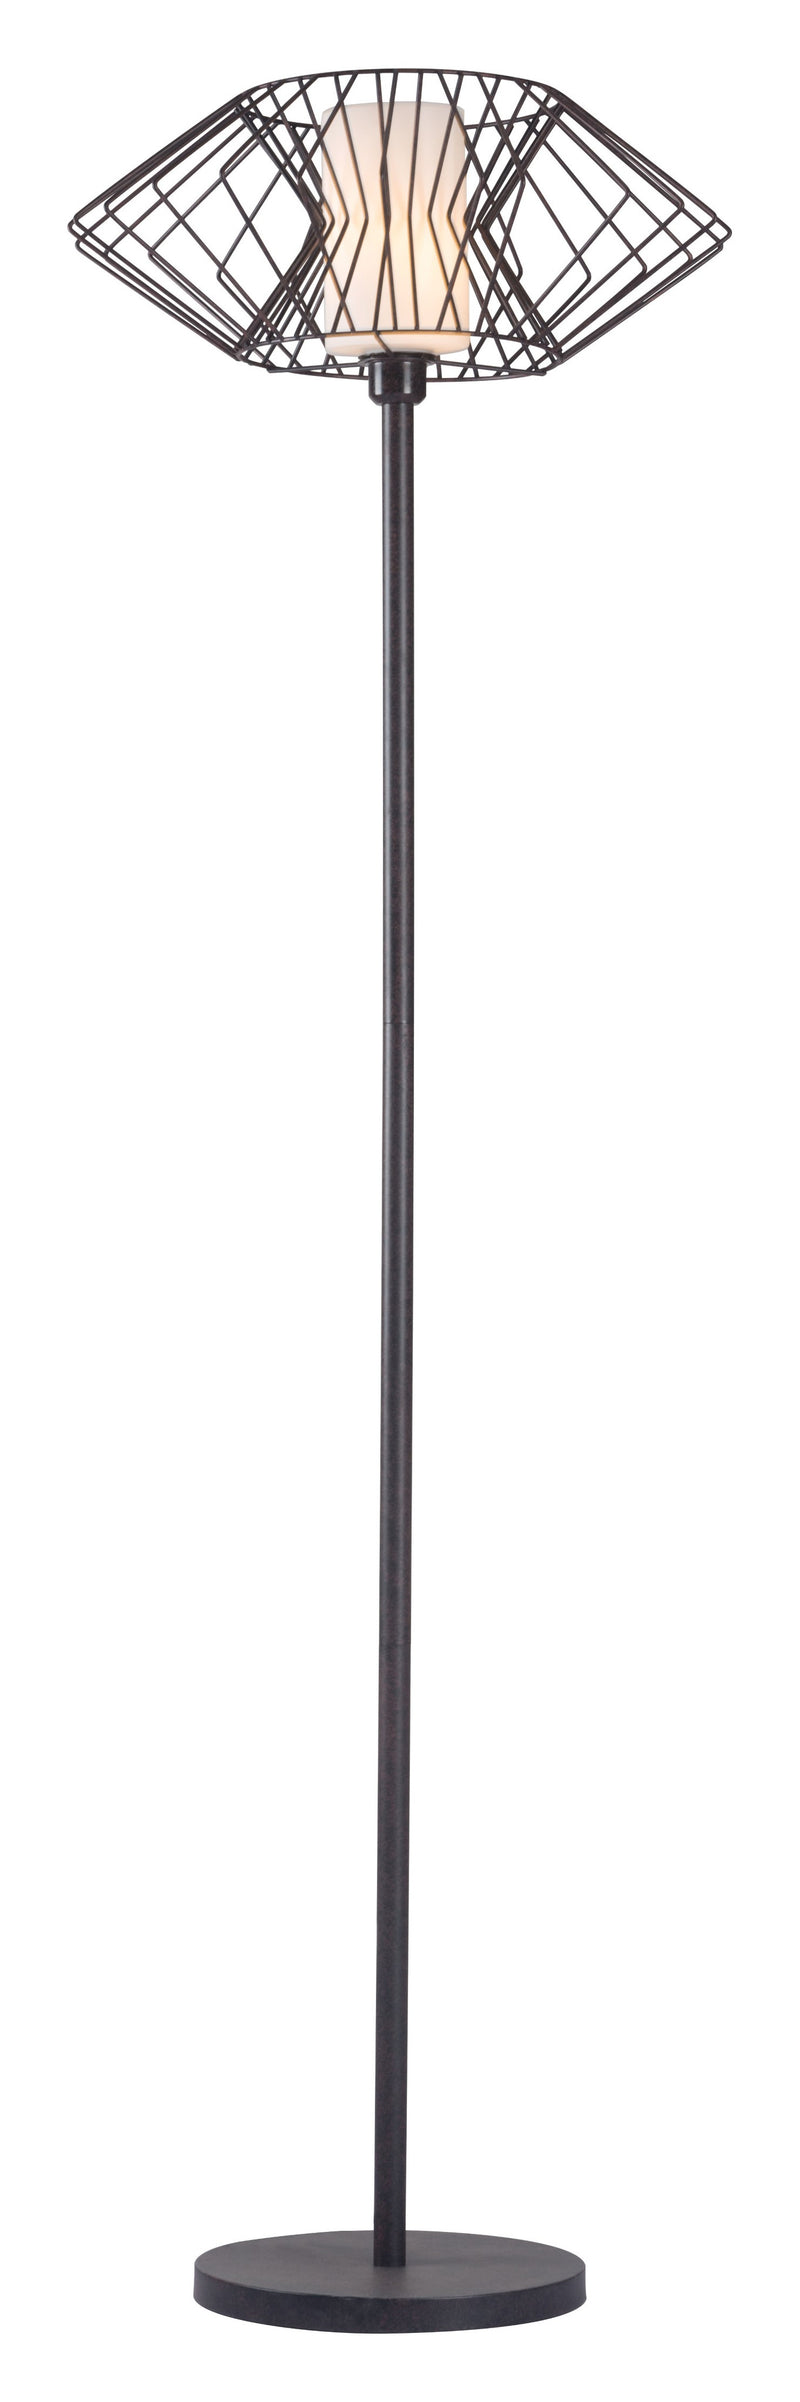 Tumble Floor Lamp (Rust)